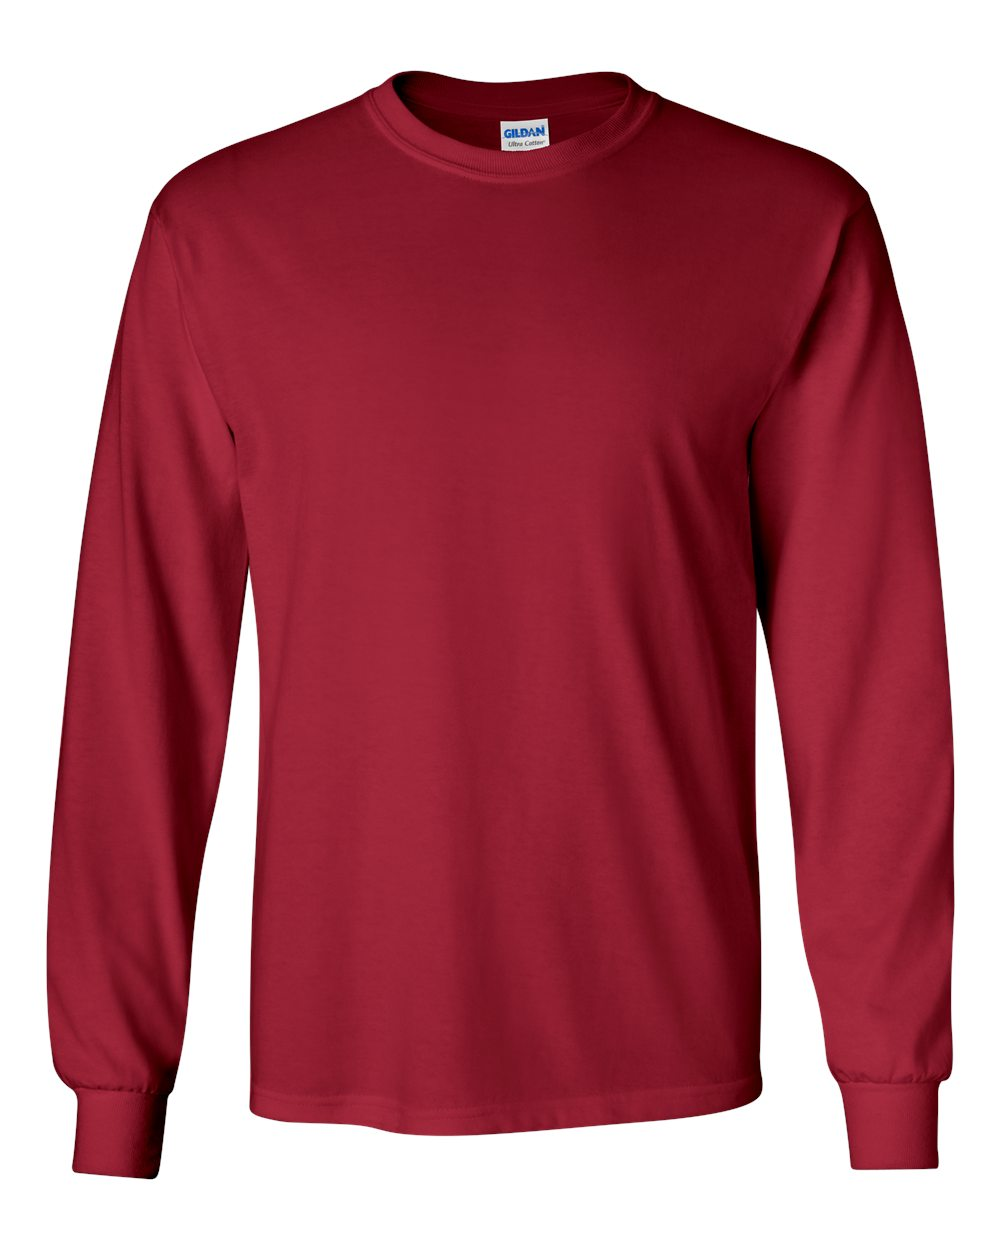 Gildan_2400_Cardinal_Red_Front_High.jpg